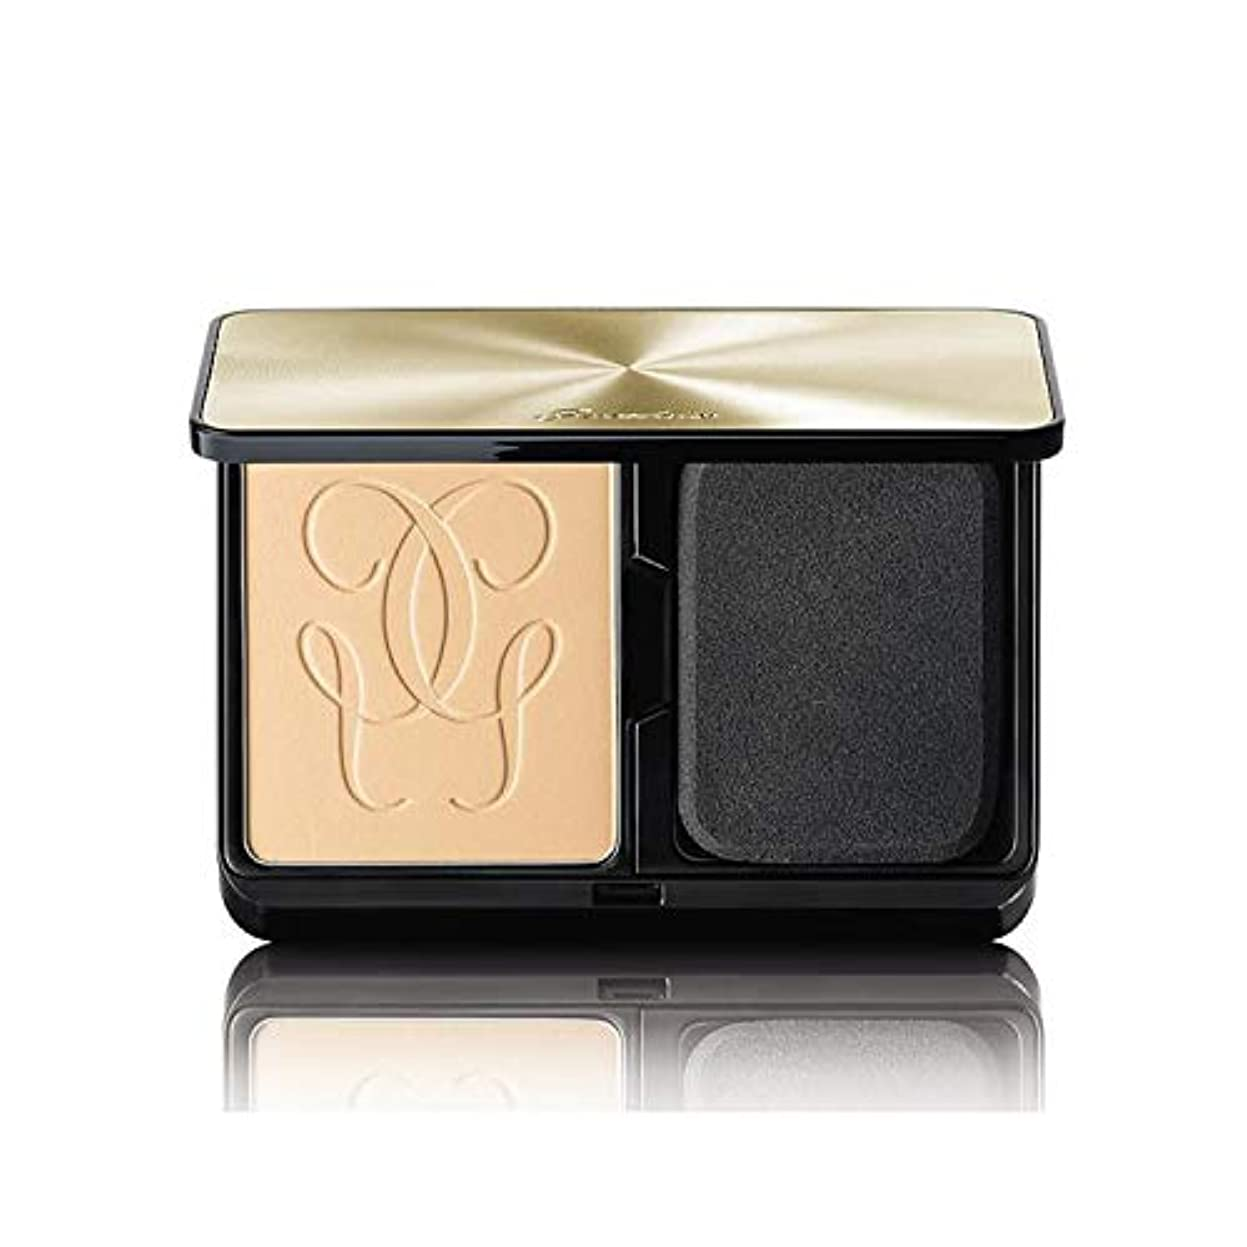 分注する力学商人ゲラン Lingerie De Peau Mat Alive Buildable Compact Powder Foundation SPF 15 - # 01N Very Light 8.5g/0.29oz並行輸入品